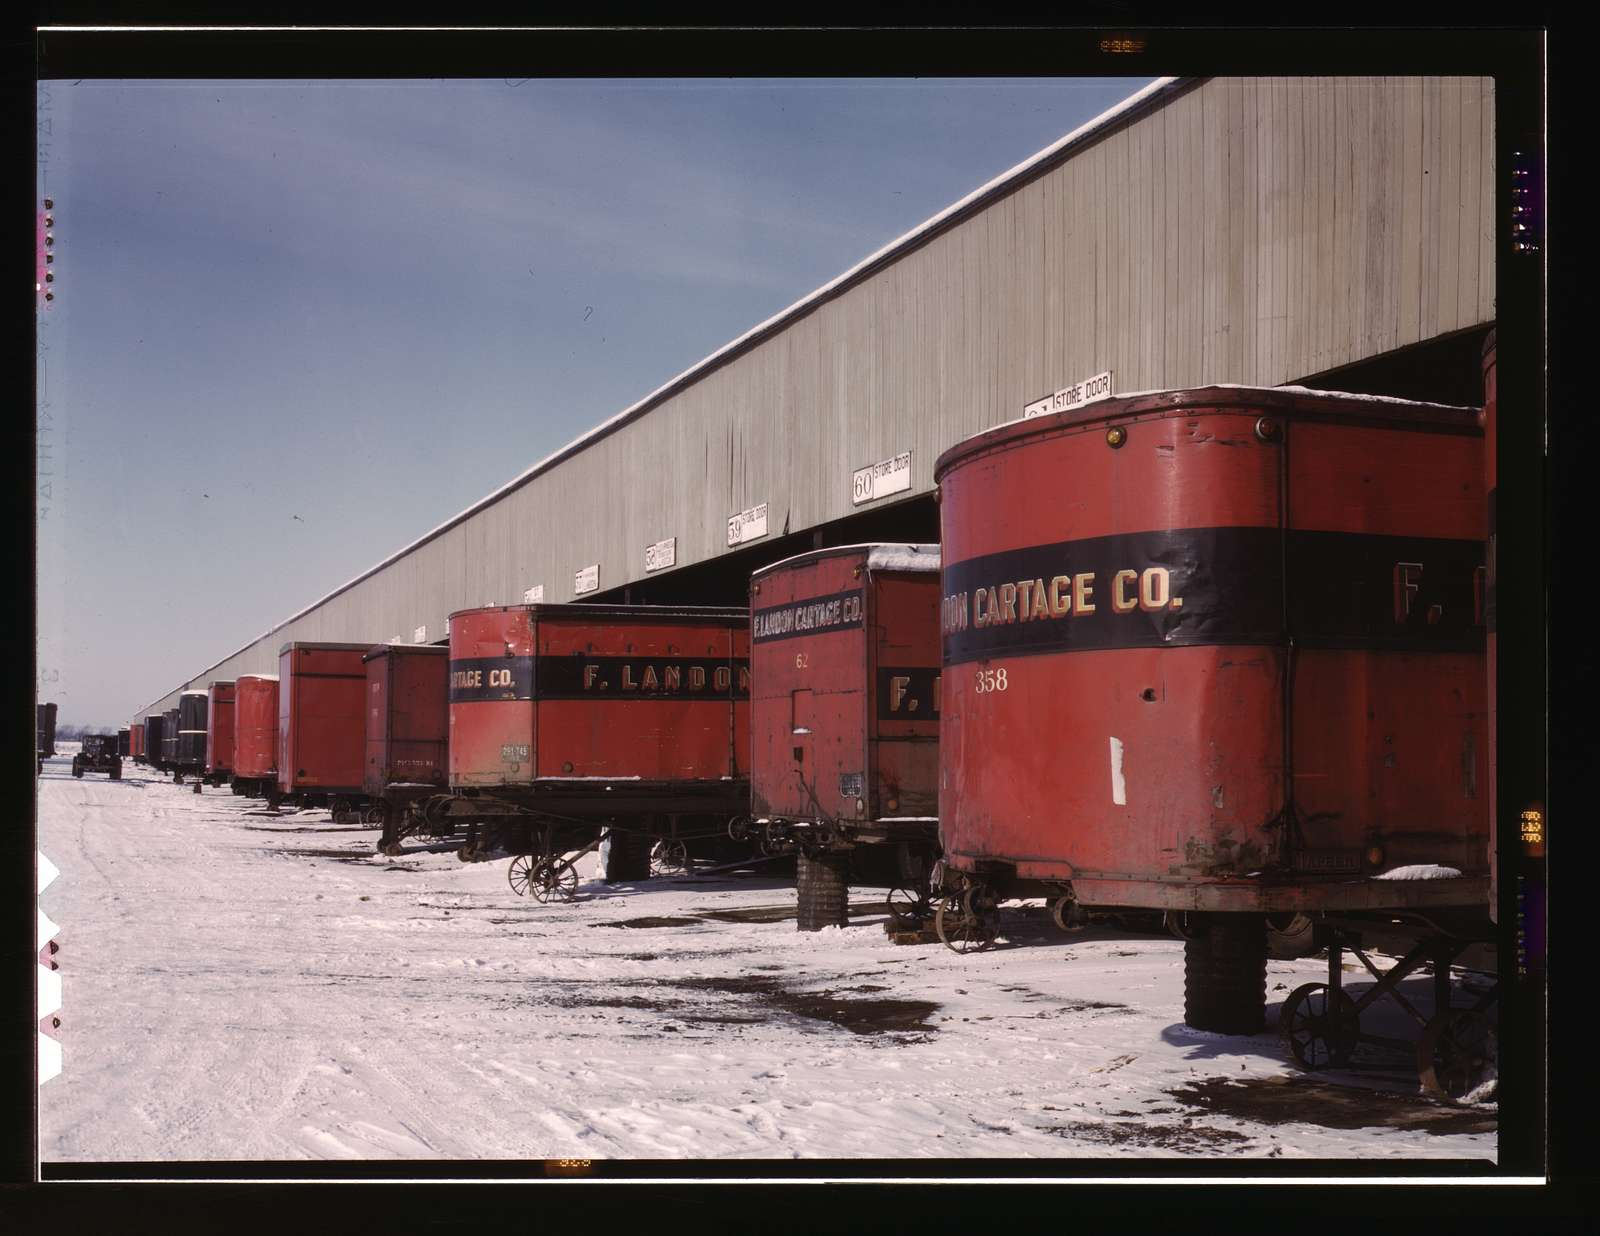 Truck trailers line up at a freight house to load and unload goods from the Chicago and Northwestern i.e. North Western railroad, Chicago, Ill